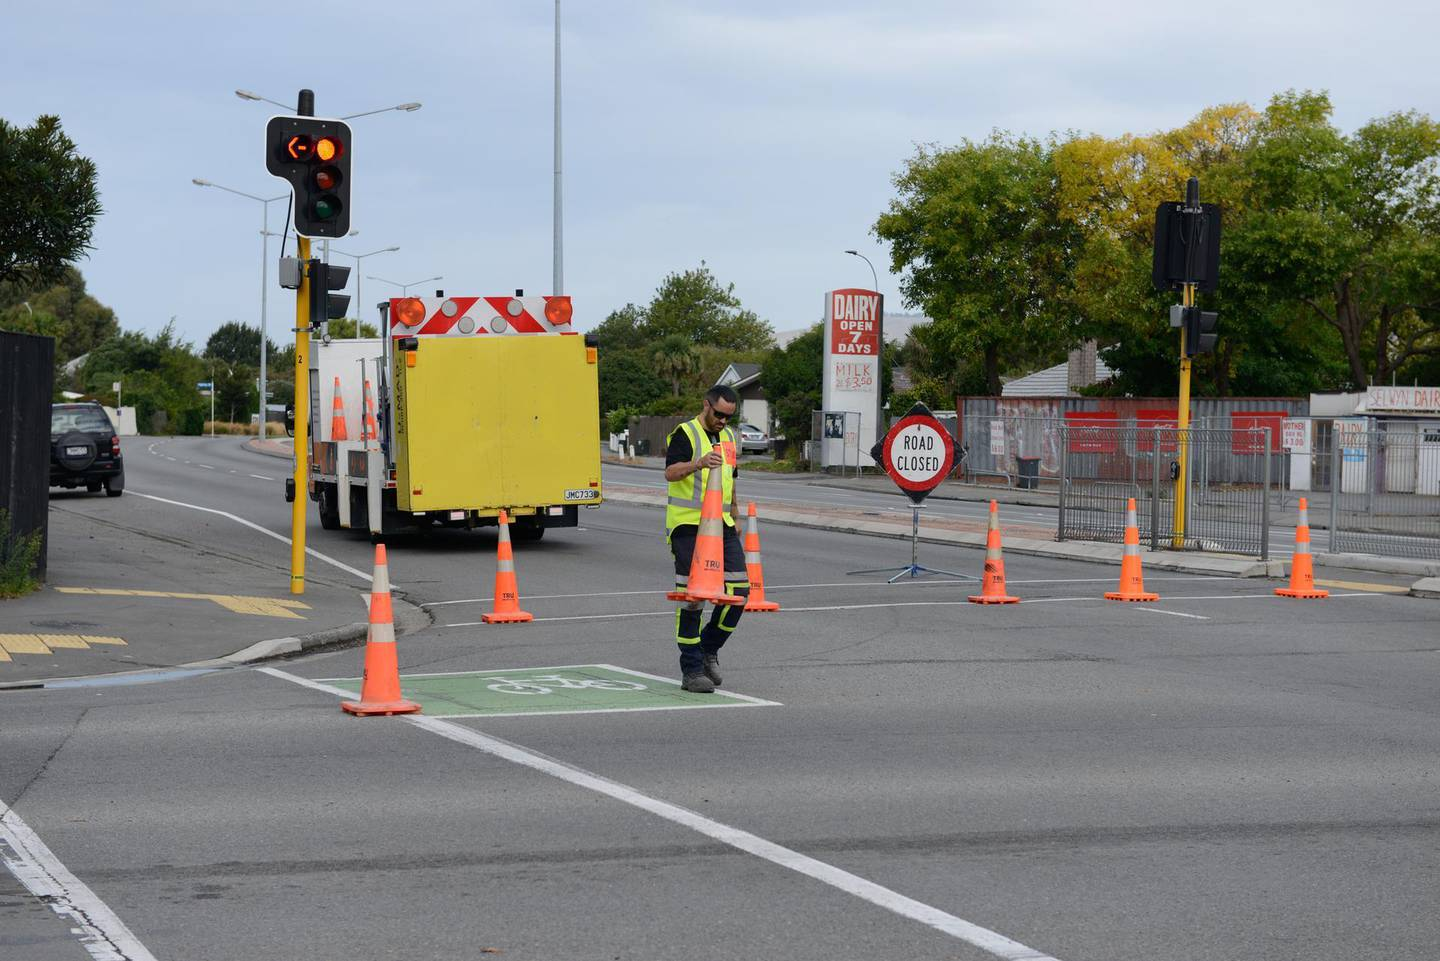 CHRISTCHURCH, NEW ZEALAND  MARCH 15: A police blockade is seen at the intersection of Brougham Street and Selwyn Street on March 15, 2019 in Christchurch, New Zealand. Roads were closed as police responded to an active shooter situation following shootings at two mosques in the city. 40 people have been confirmed dead, with a further 25 injured. The deaths occurred at Al Noor mosque on and the Linwood Masjid in Christchurch after armed men entered the mosques and opened fire. Four people, three men and a woman, are now in custody. (Photo by Kurt Langer/Getty Images)